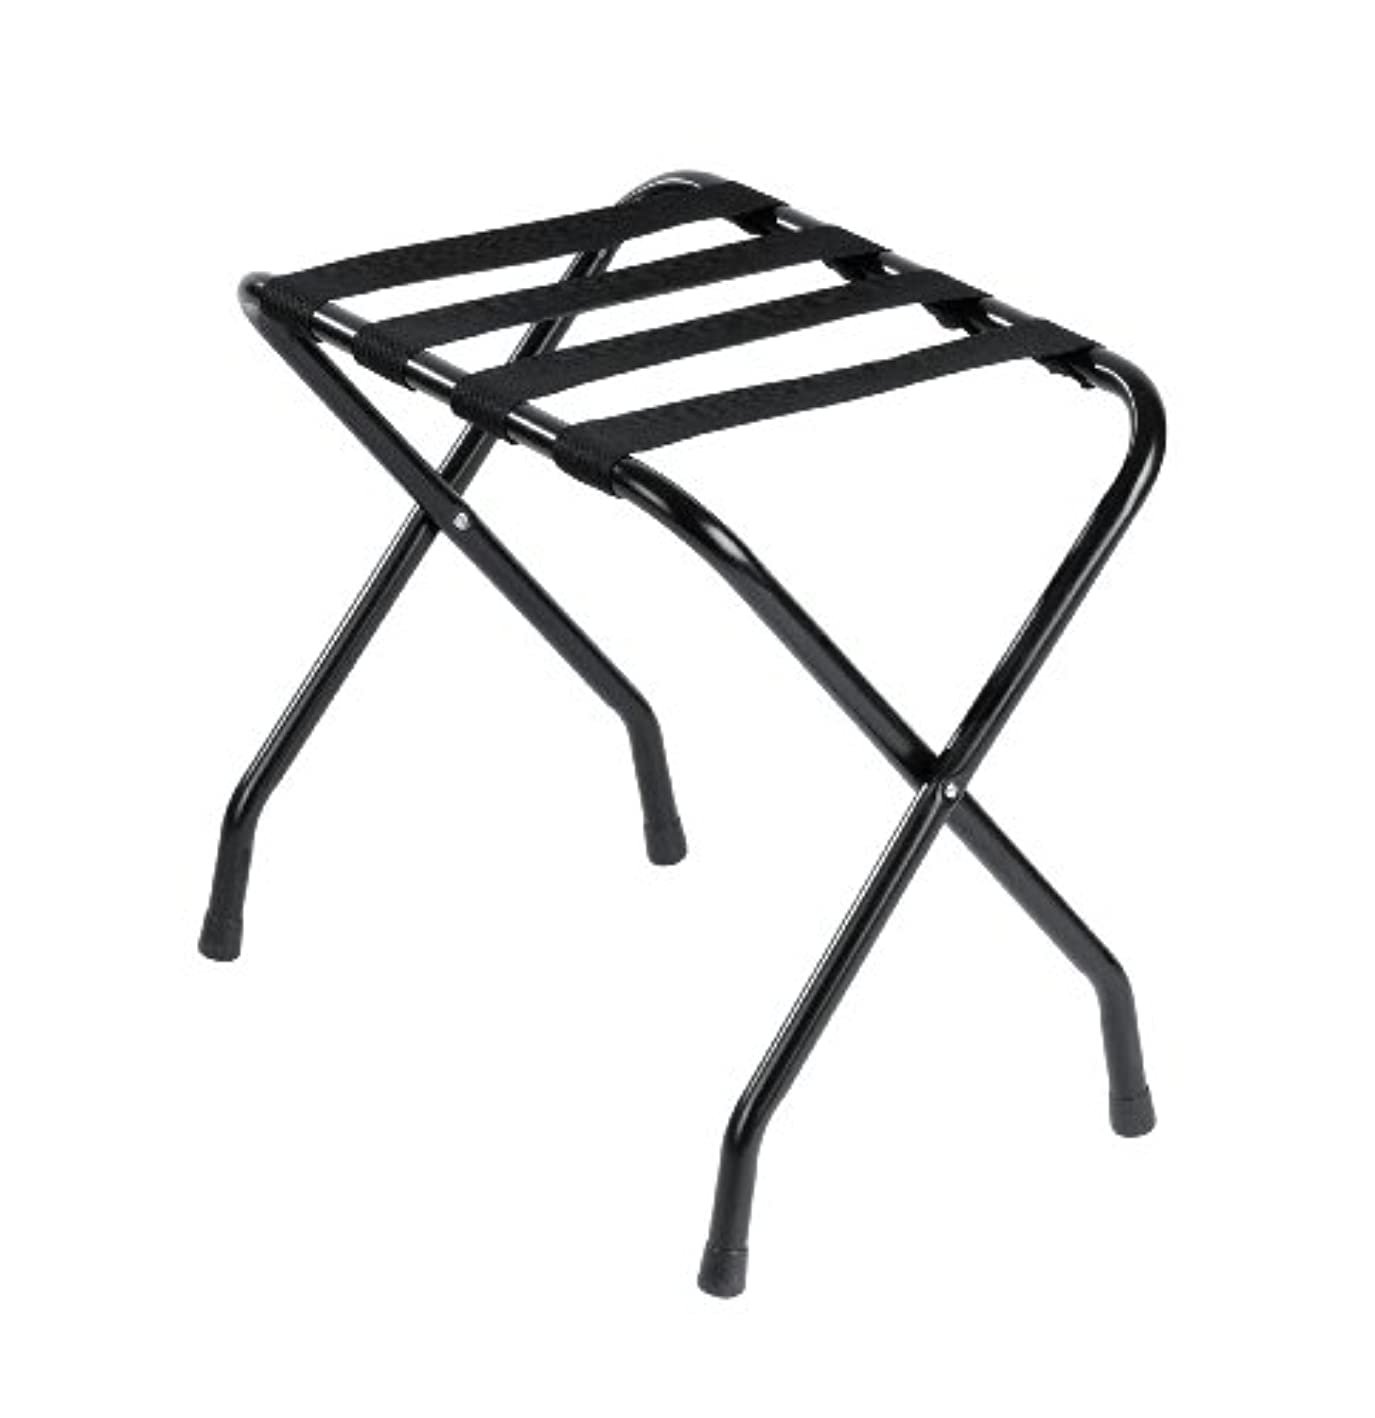 Wholesale Hotel Products Folding Metal Luggage Rack, Black Finish qheupo3295897